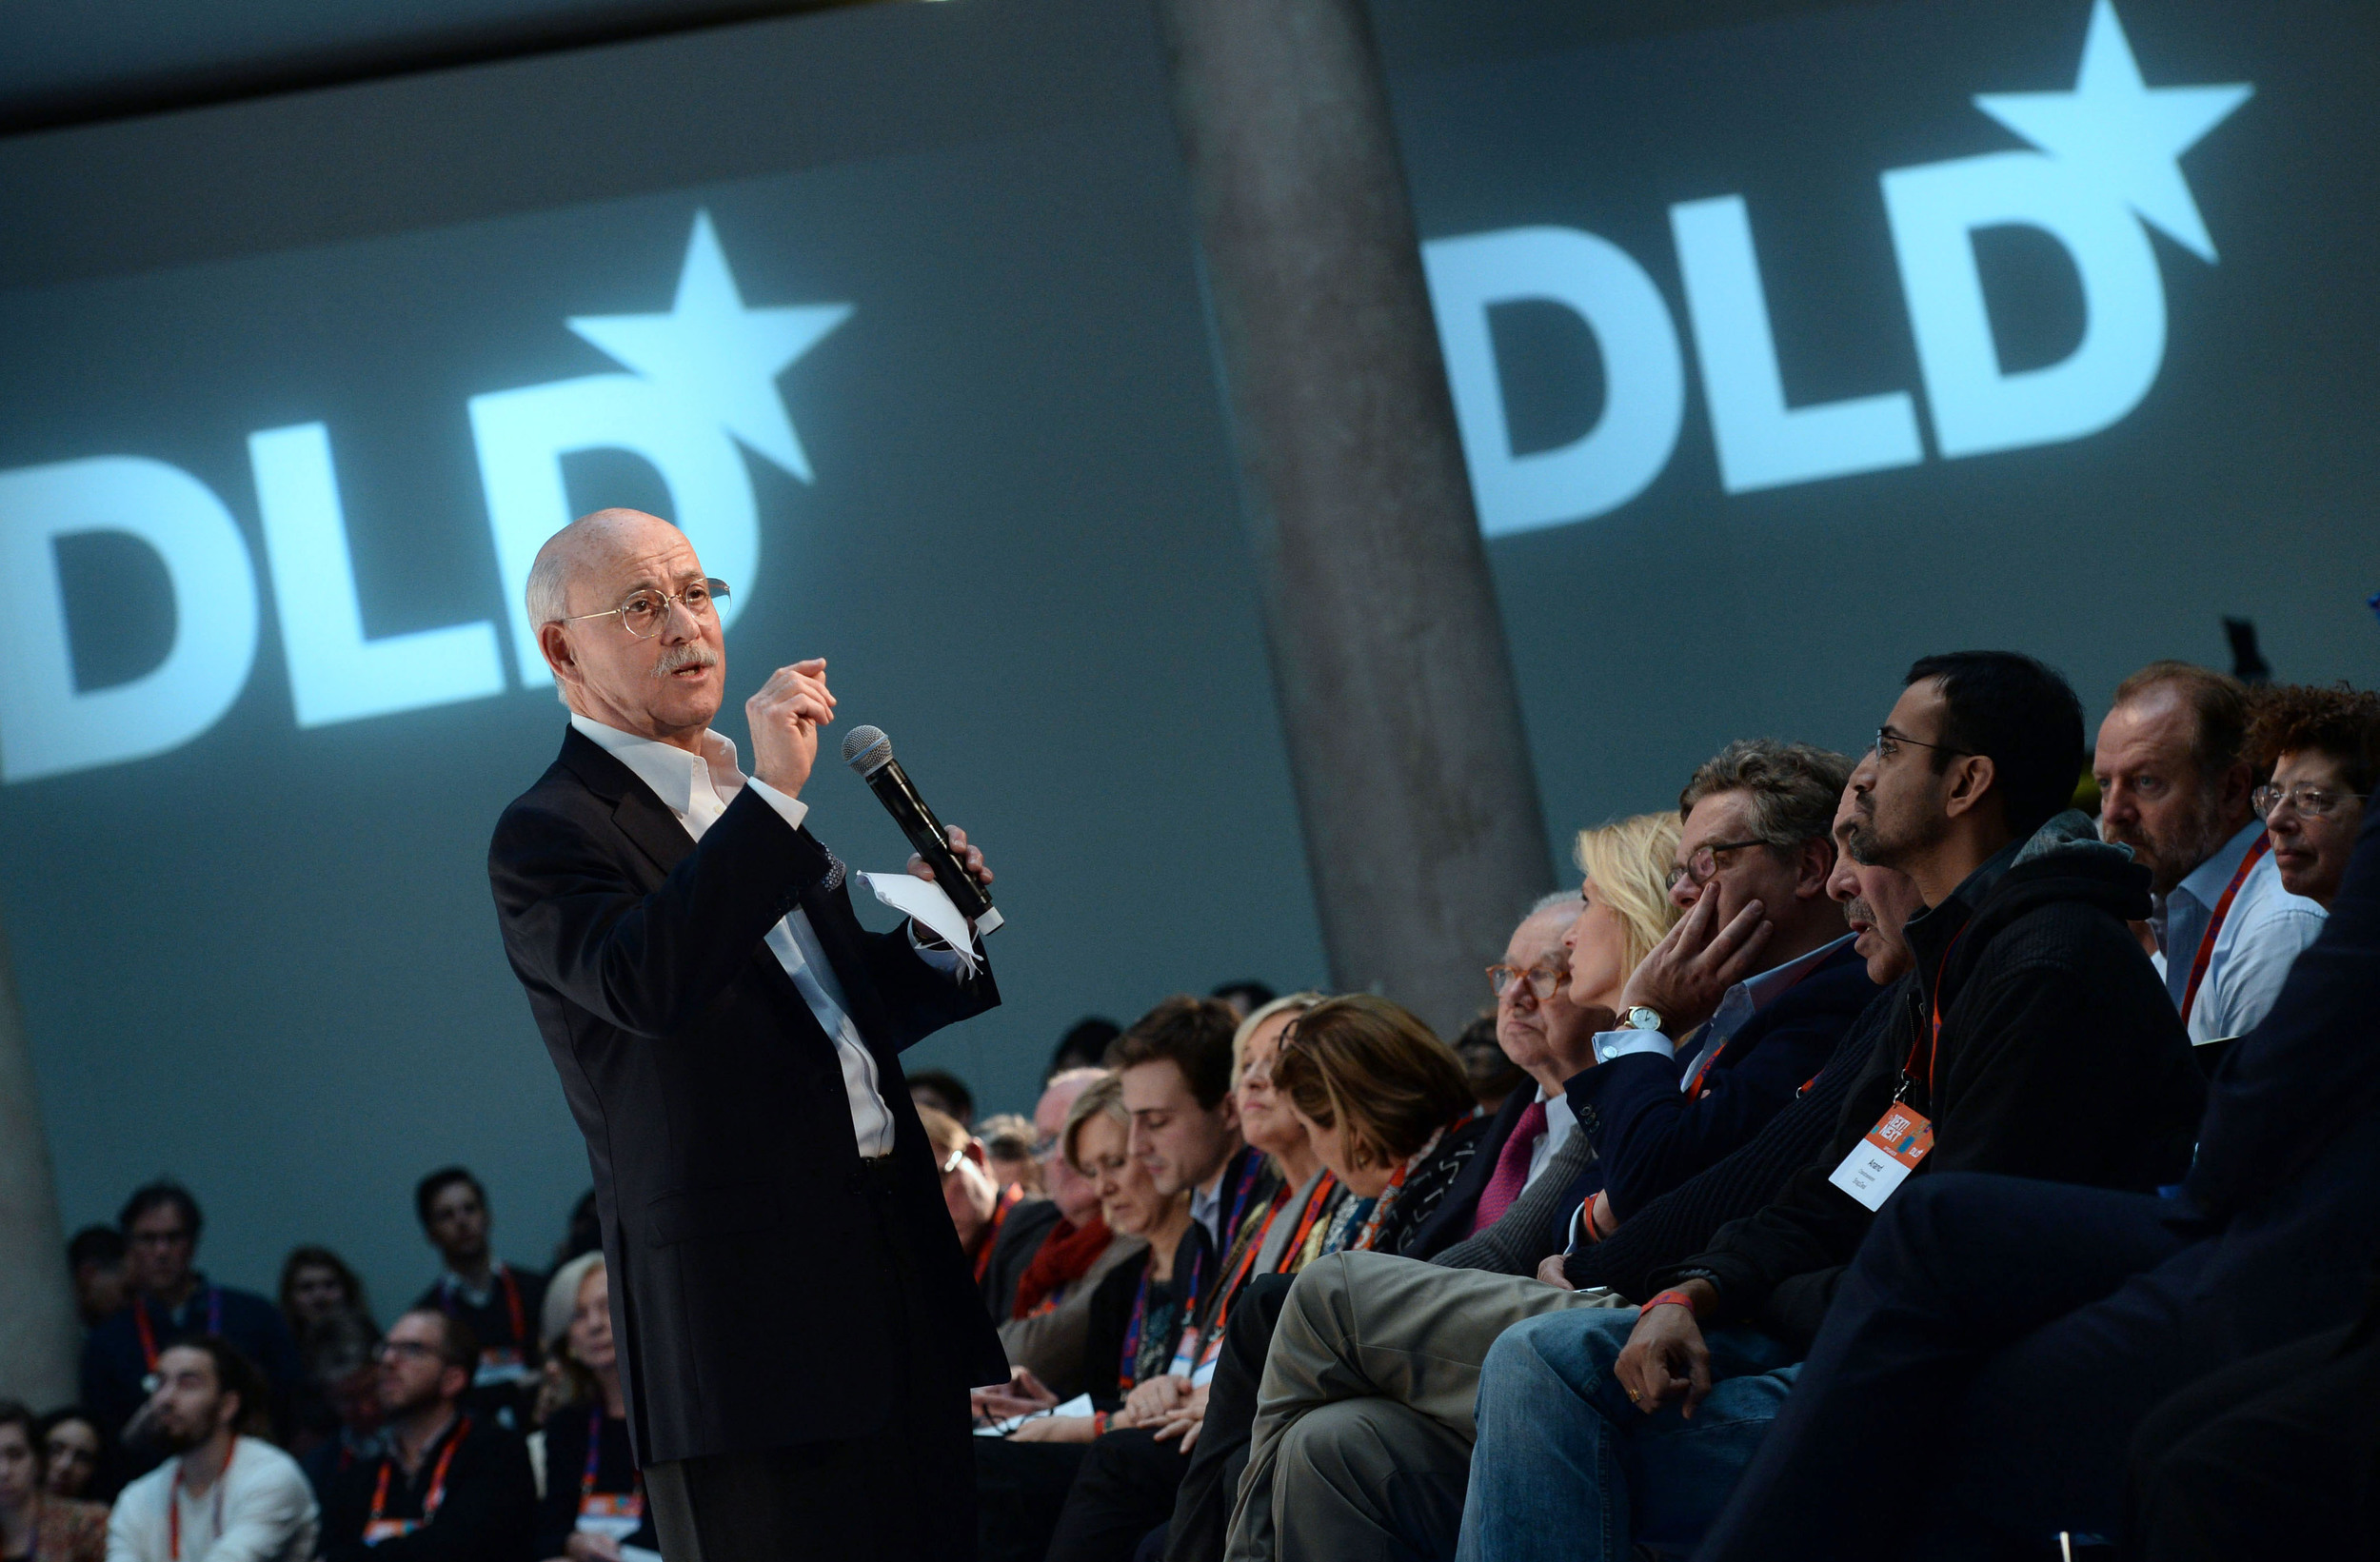 Sociologist Jeremy Rifkin speaks to the Audience. © Andreas Gebert/Picture Alliance/Hubert Burda Media